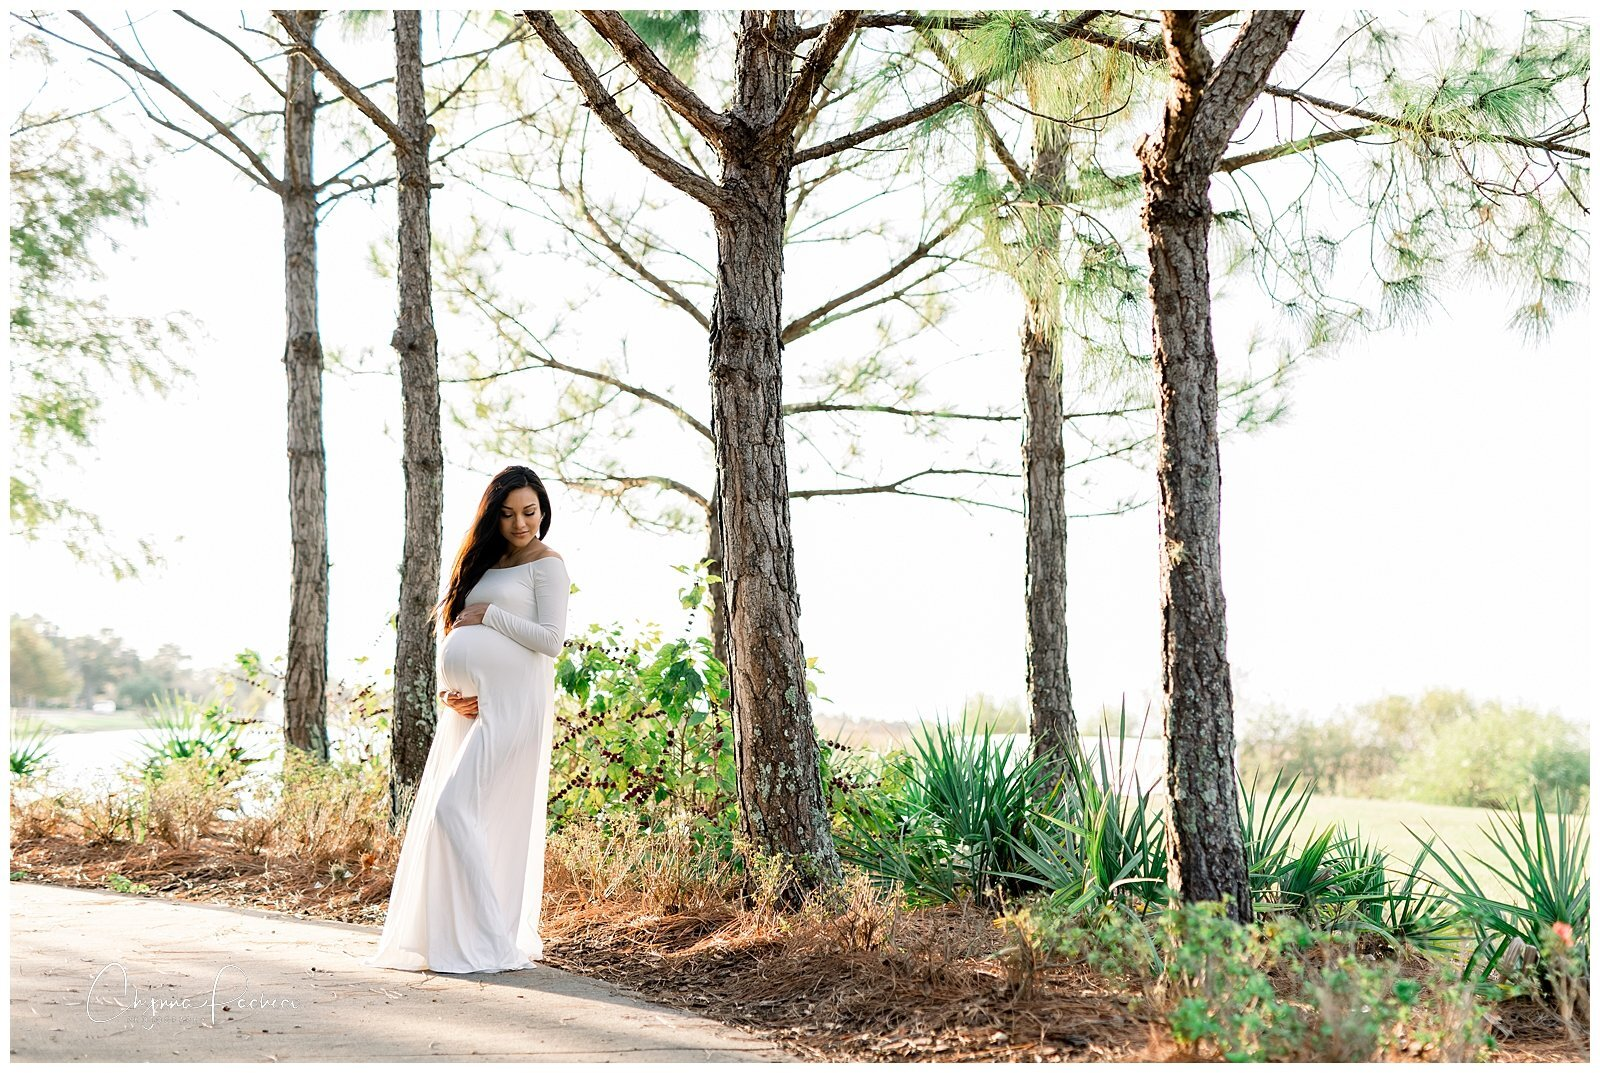 Orlando_Maternity_Photos_0997